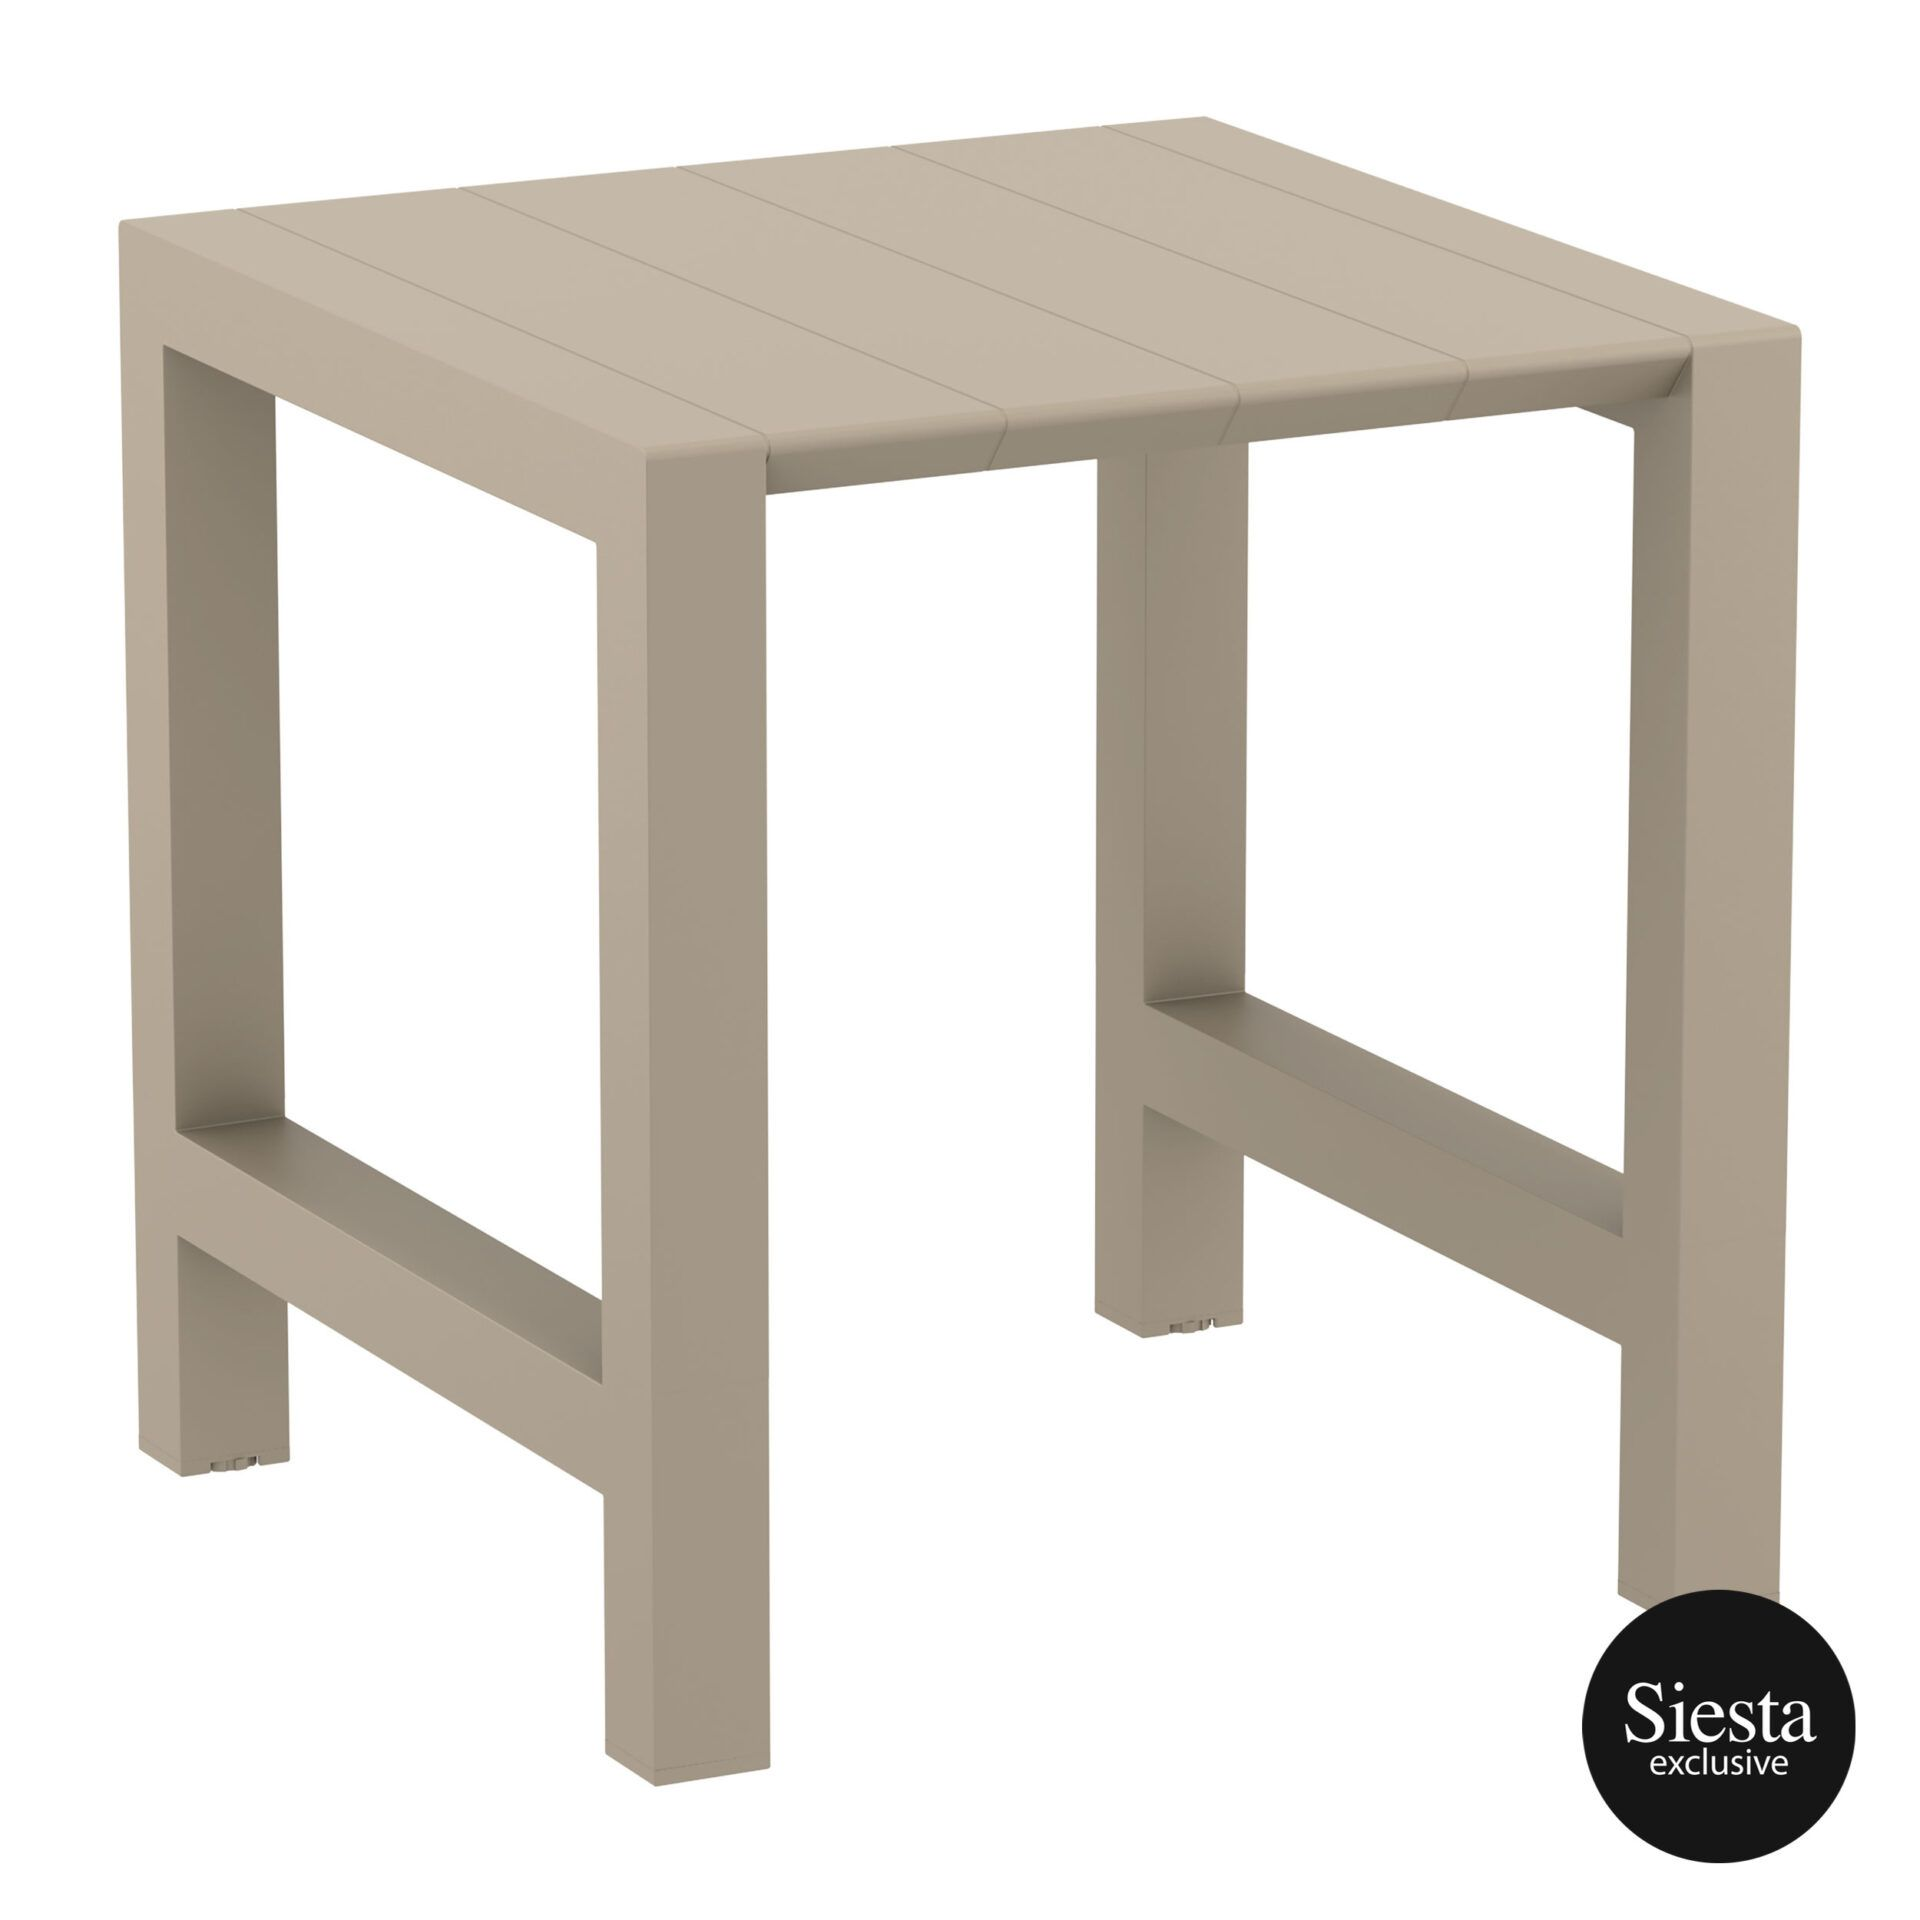 008 vegas bar table 100 taupe front side